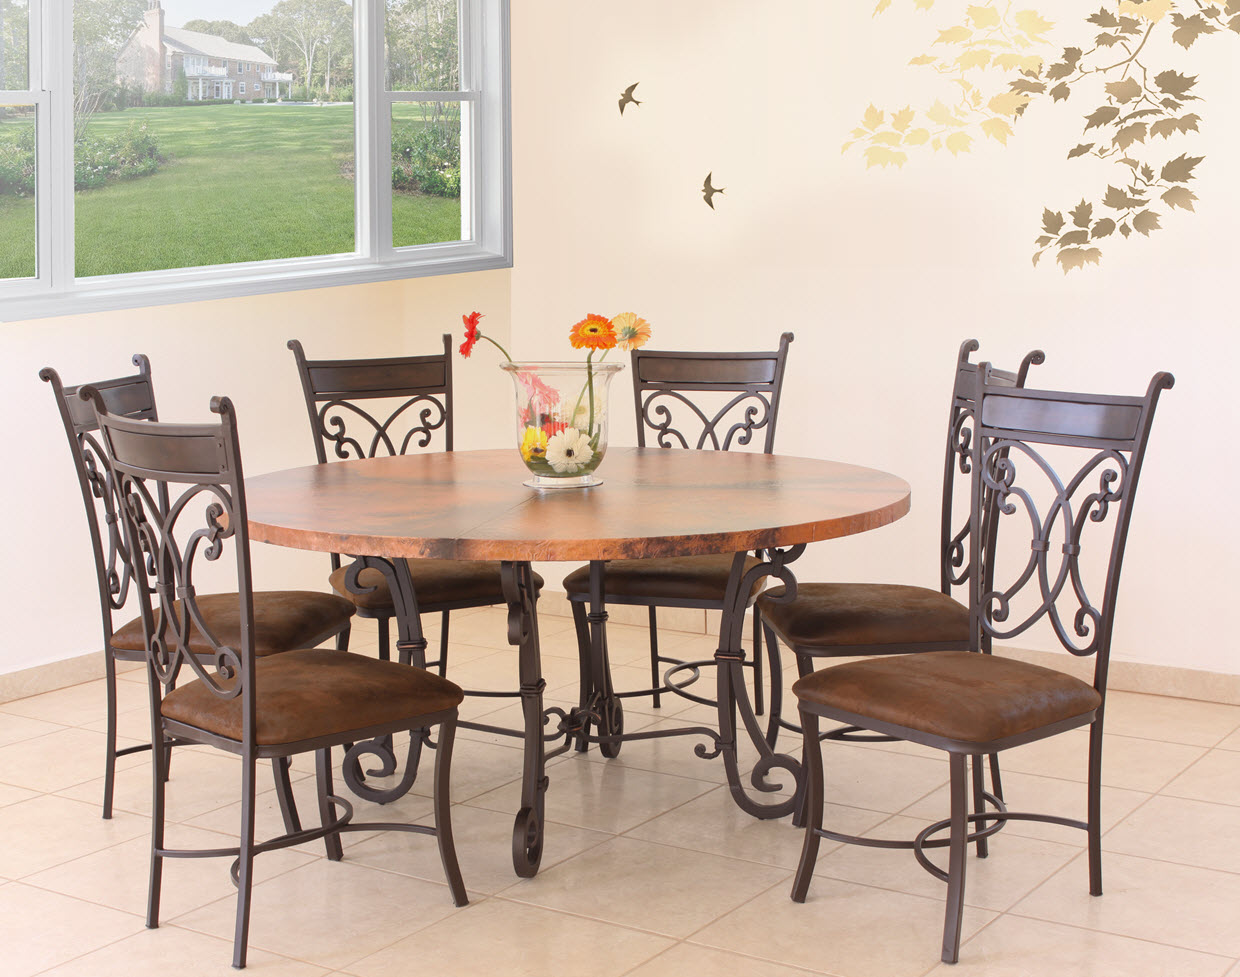 Wrought iron Roman Chair with dining table